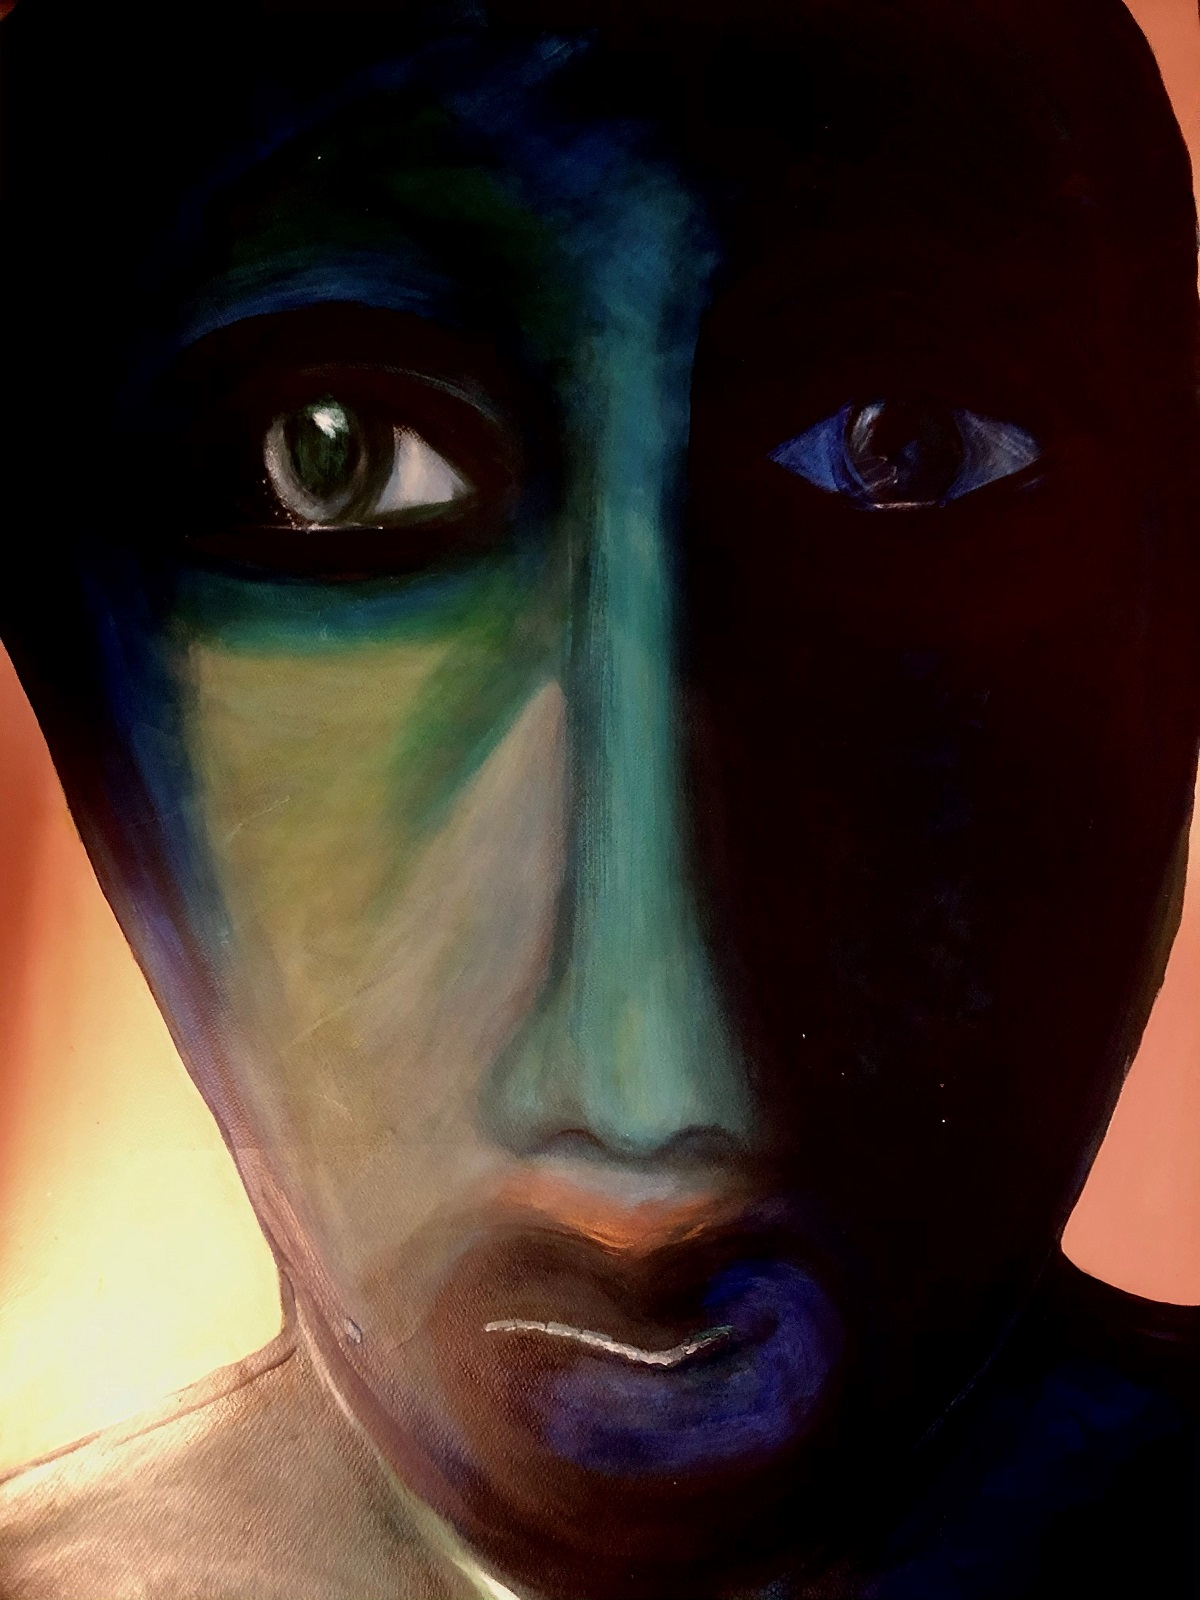 Painting of a human face using dark colors